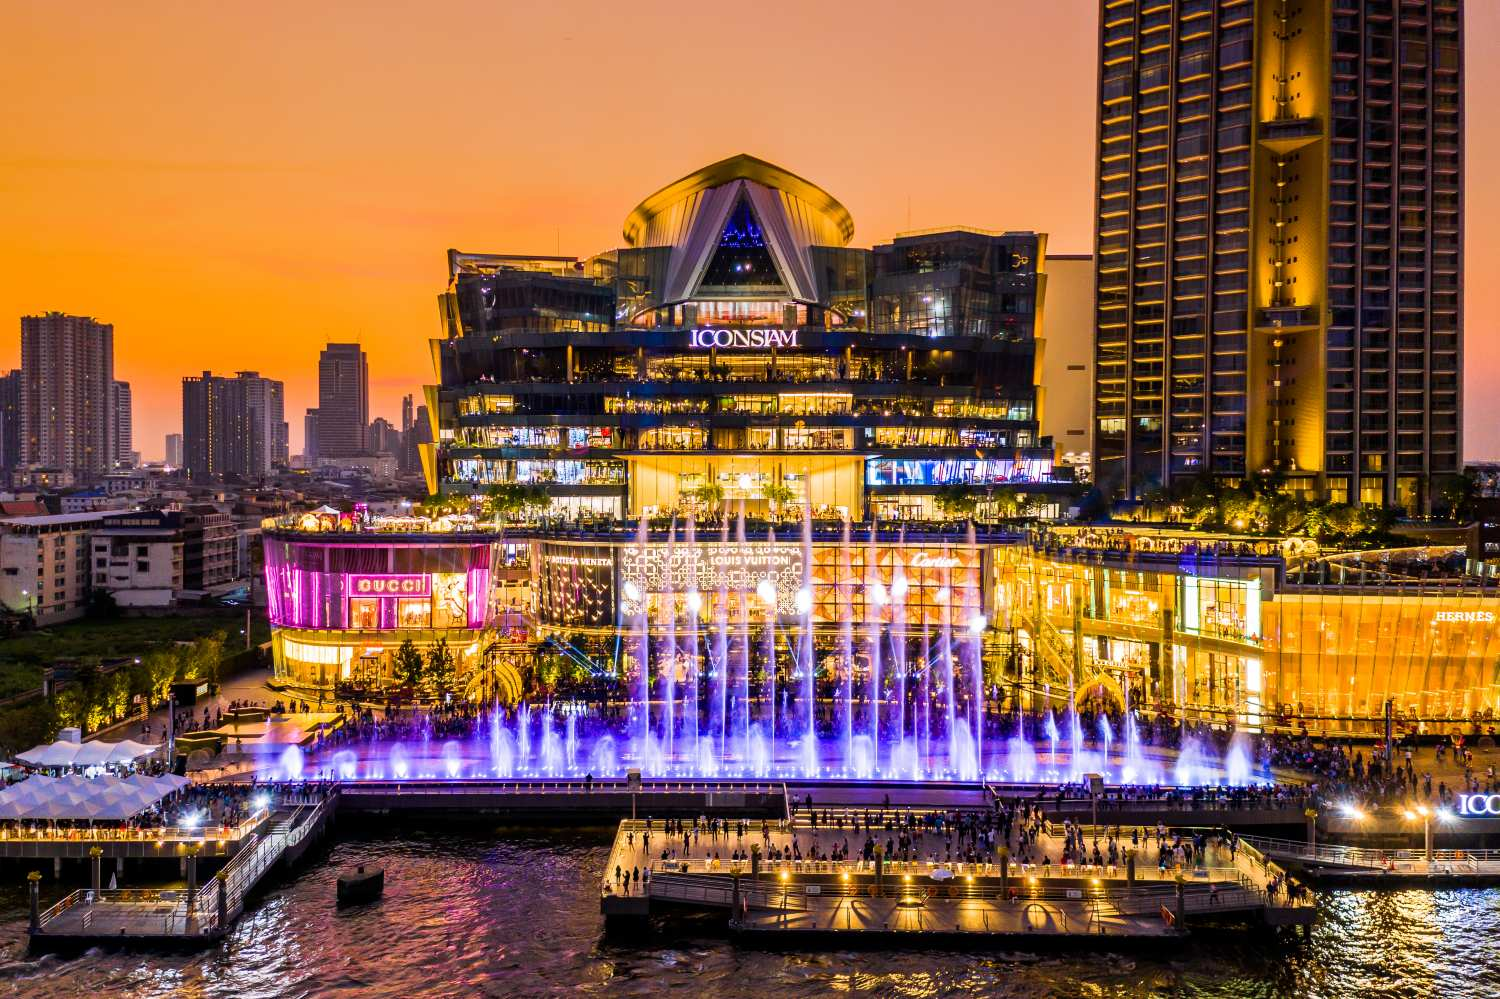 De ICON Multimedia Water Feature van Ghesa bij ICONSIAM in Bangkok